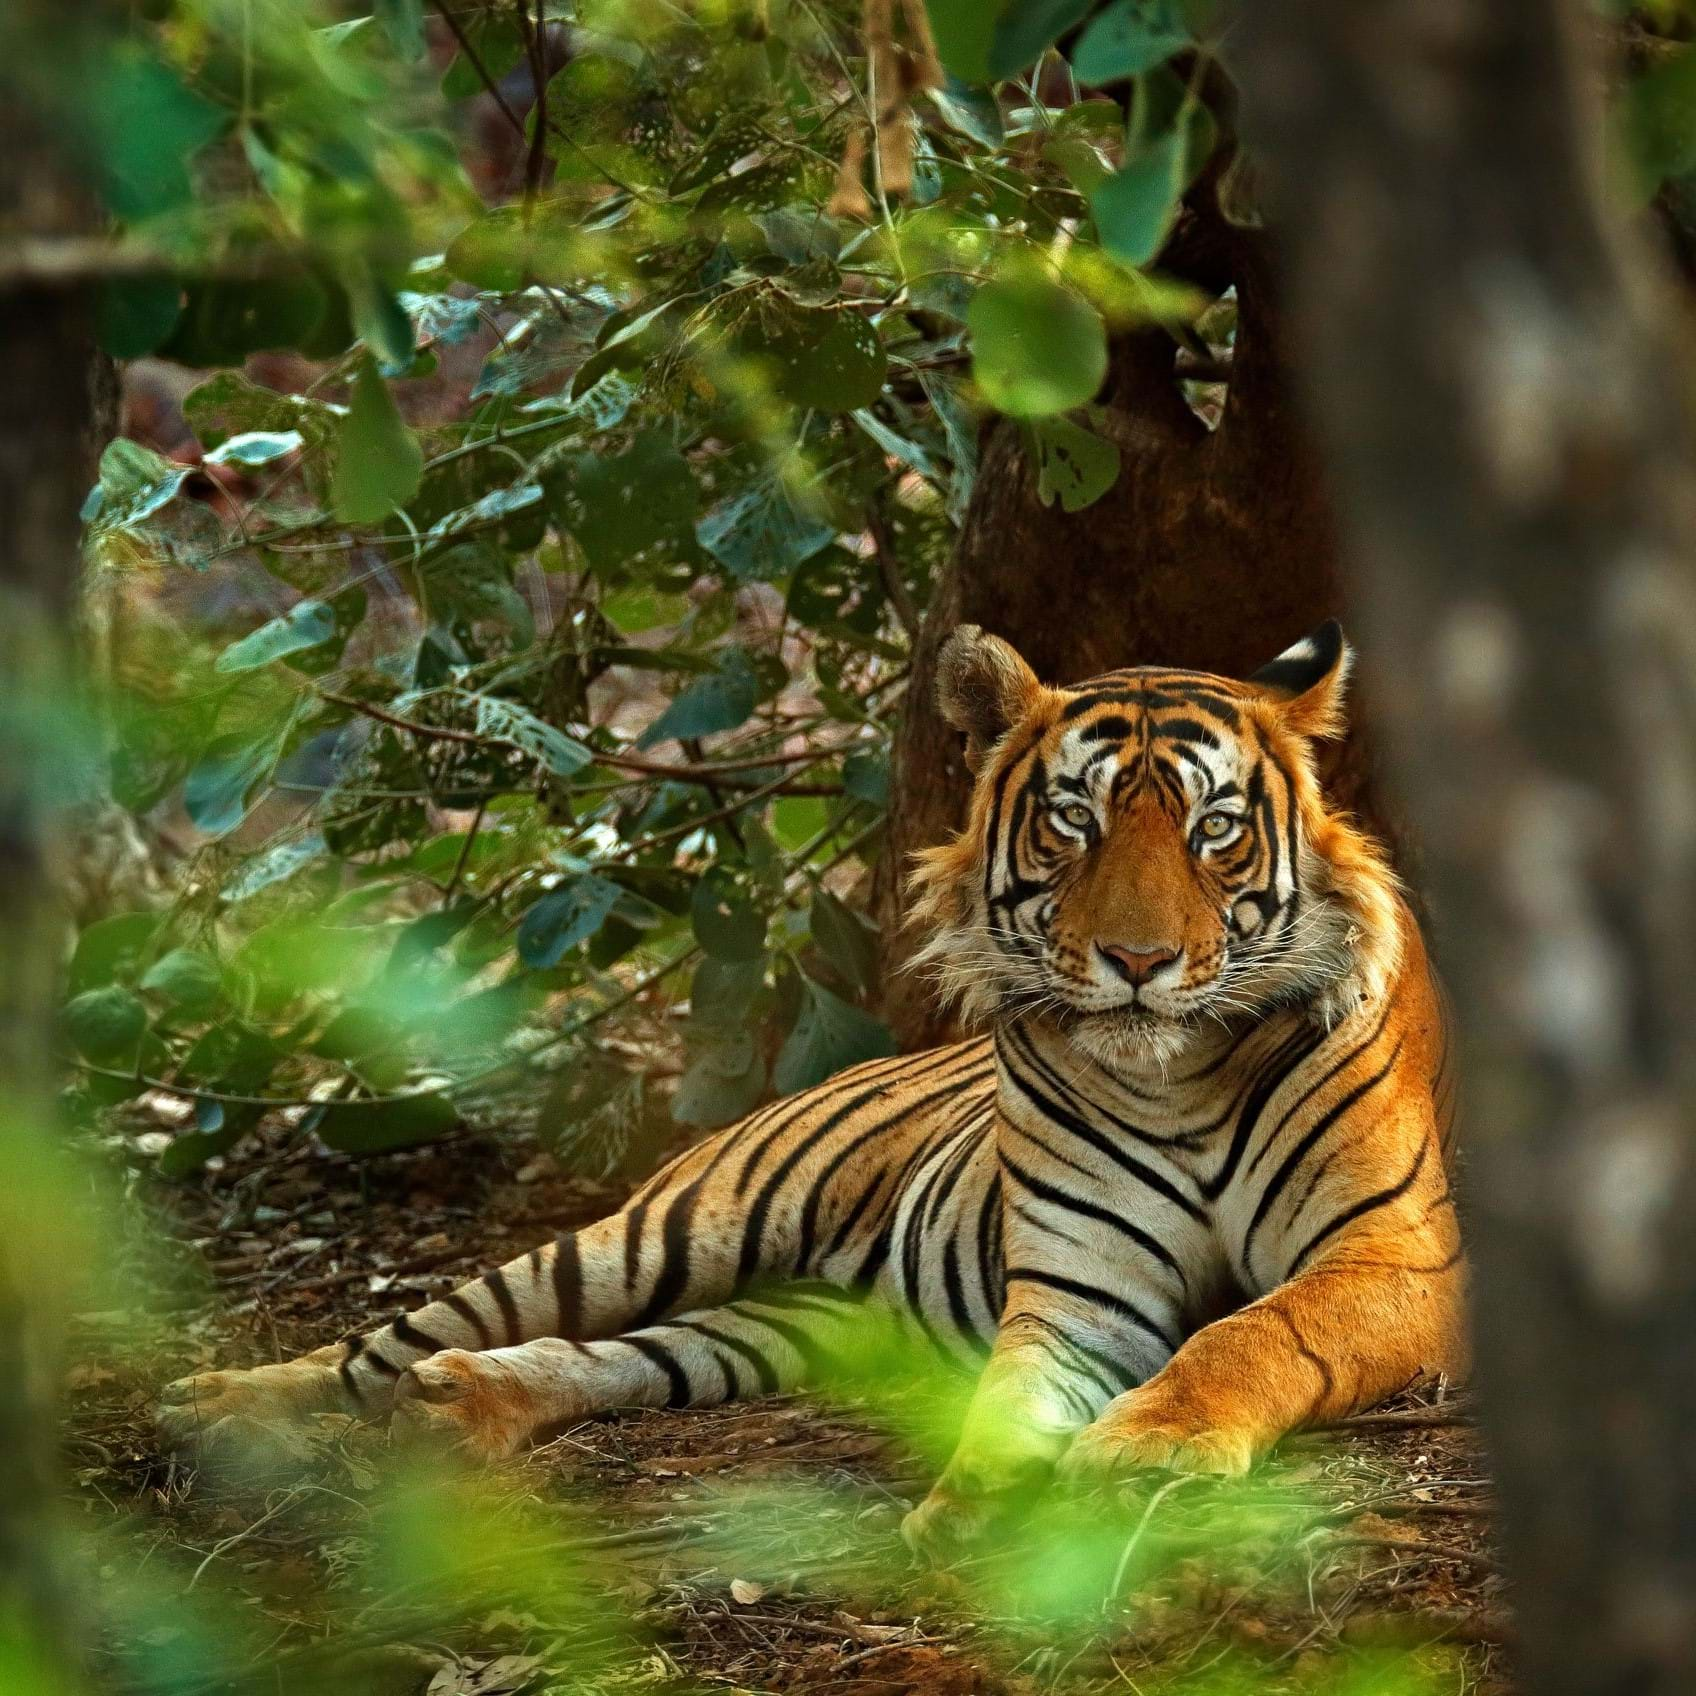 tiger in a forest in India